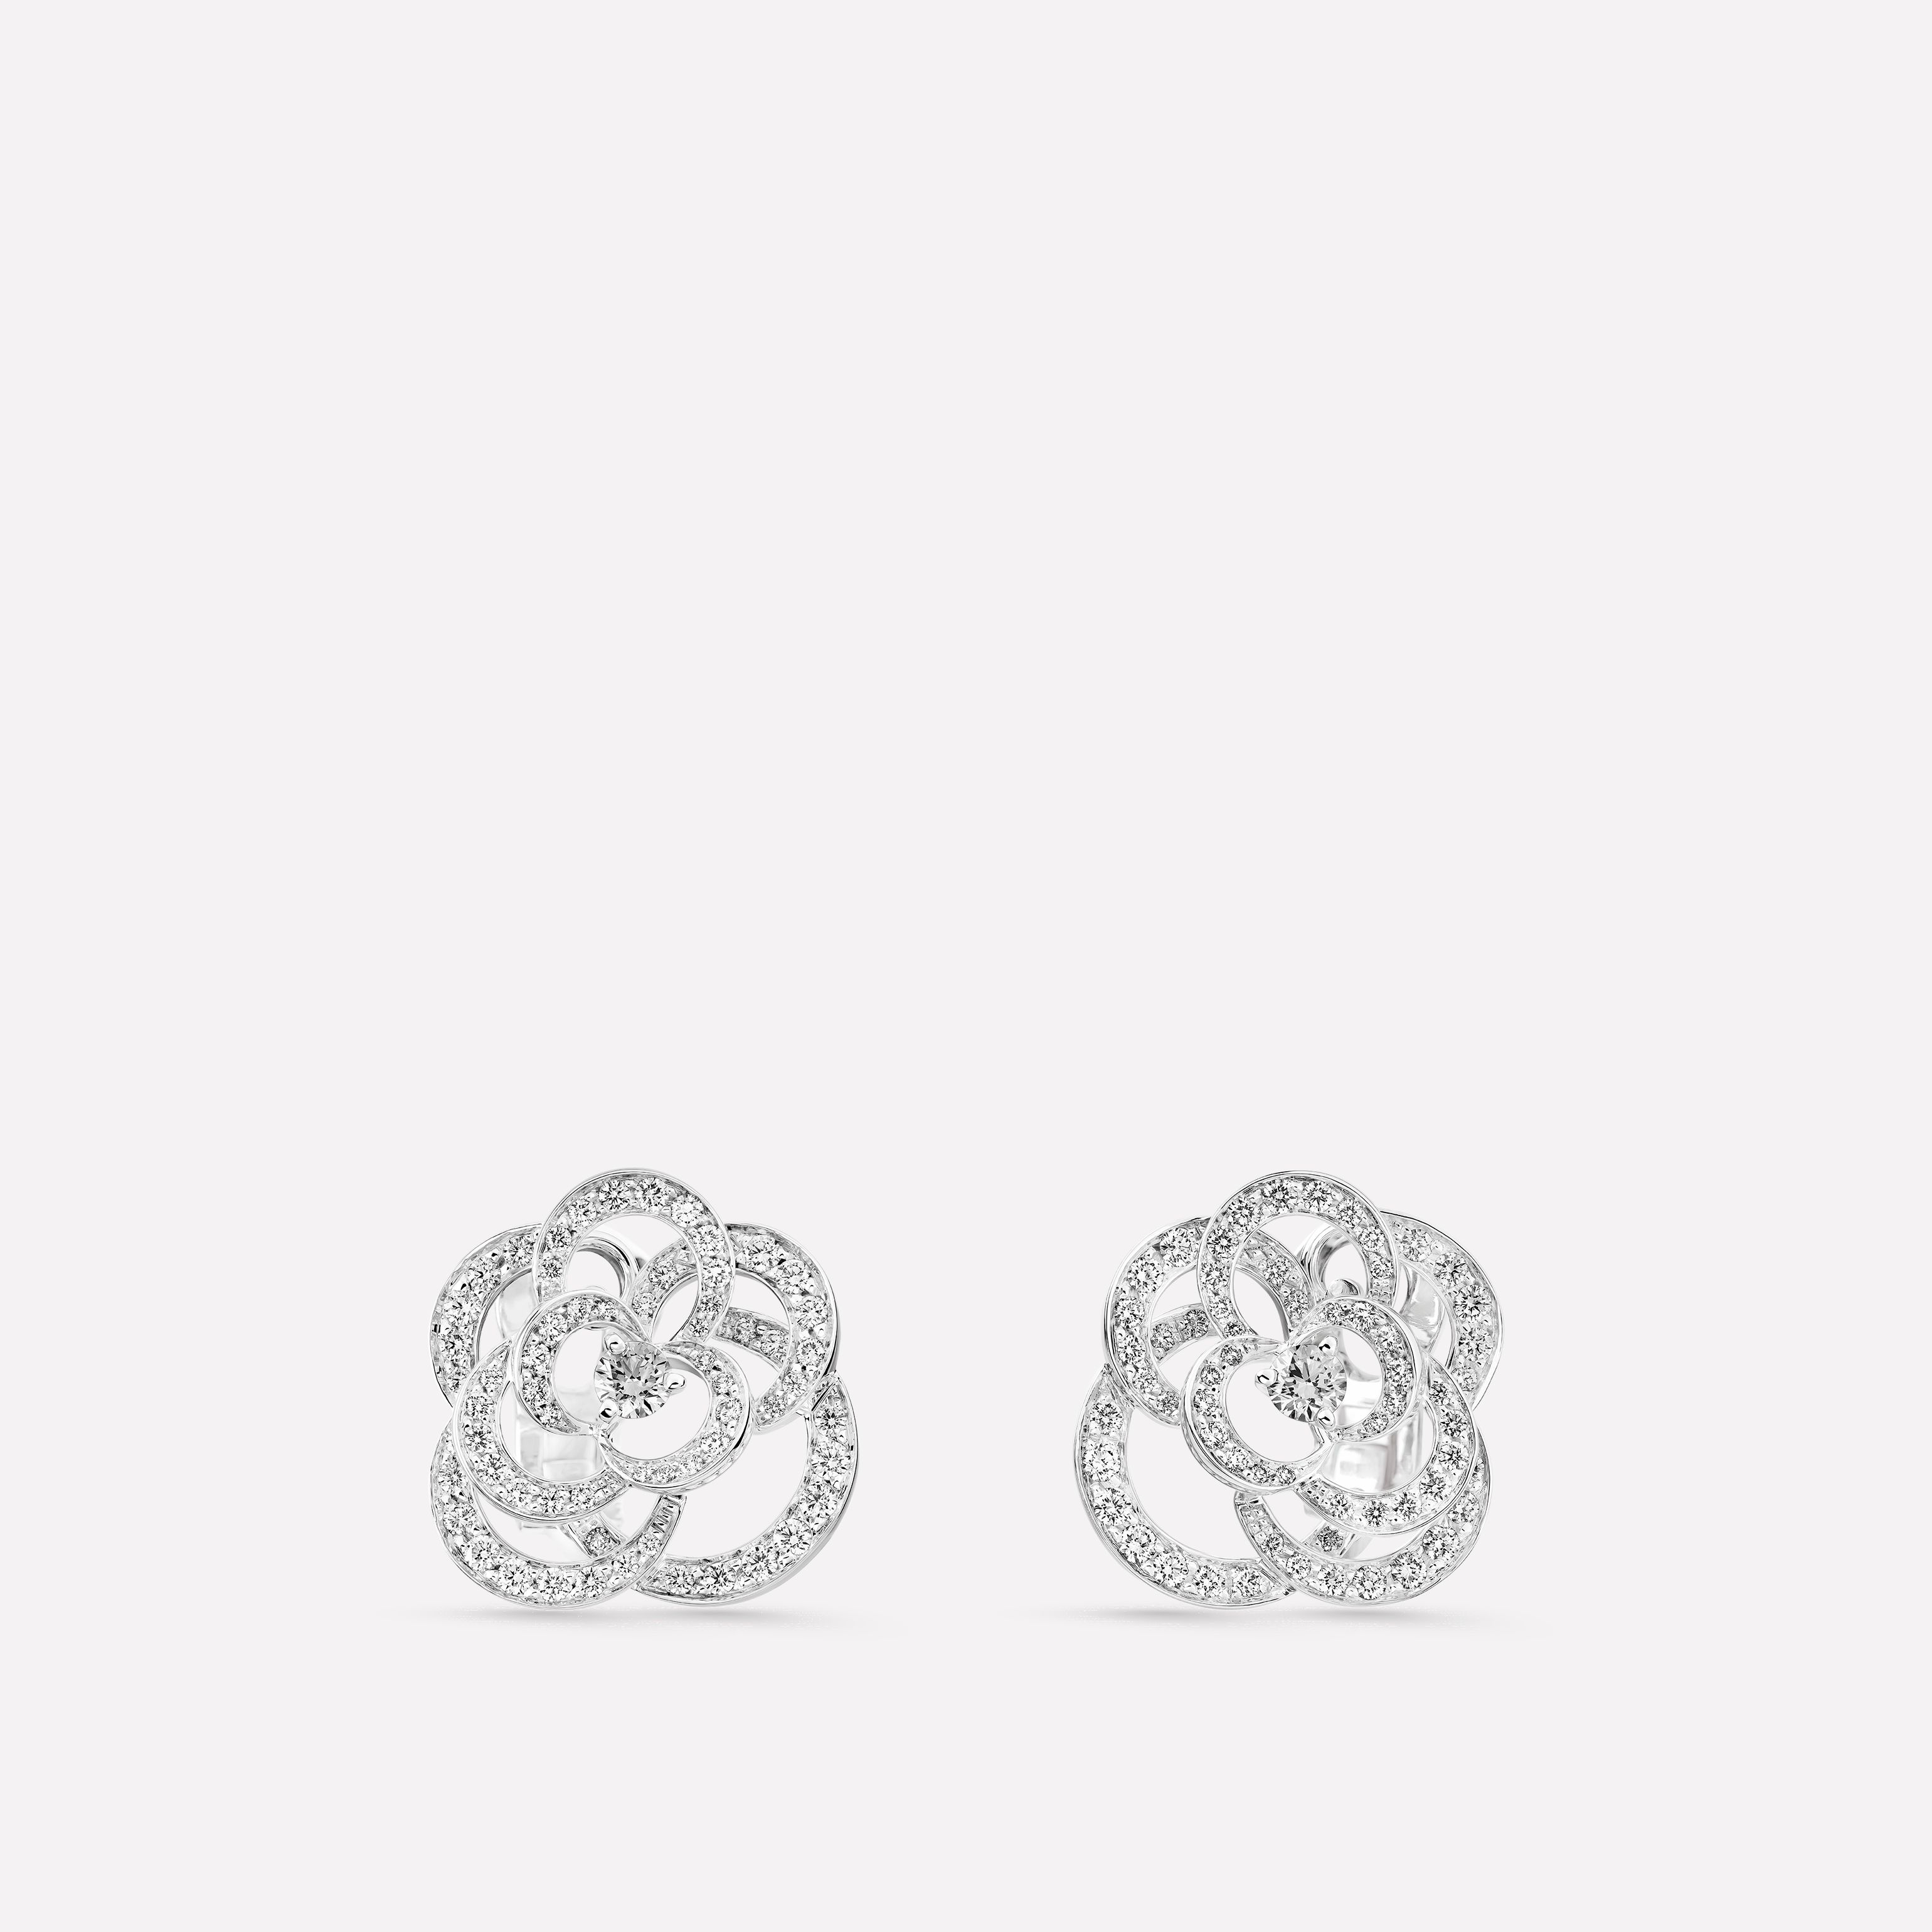 See Full Size Image Camélia Earrings J2672 Front View Standard